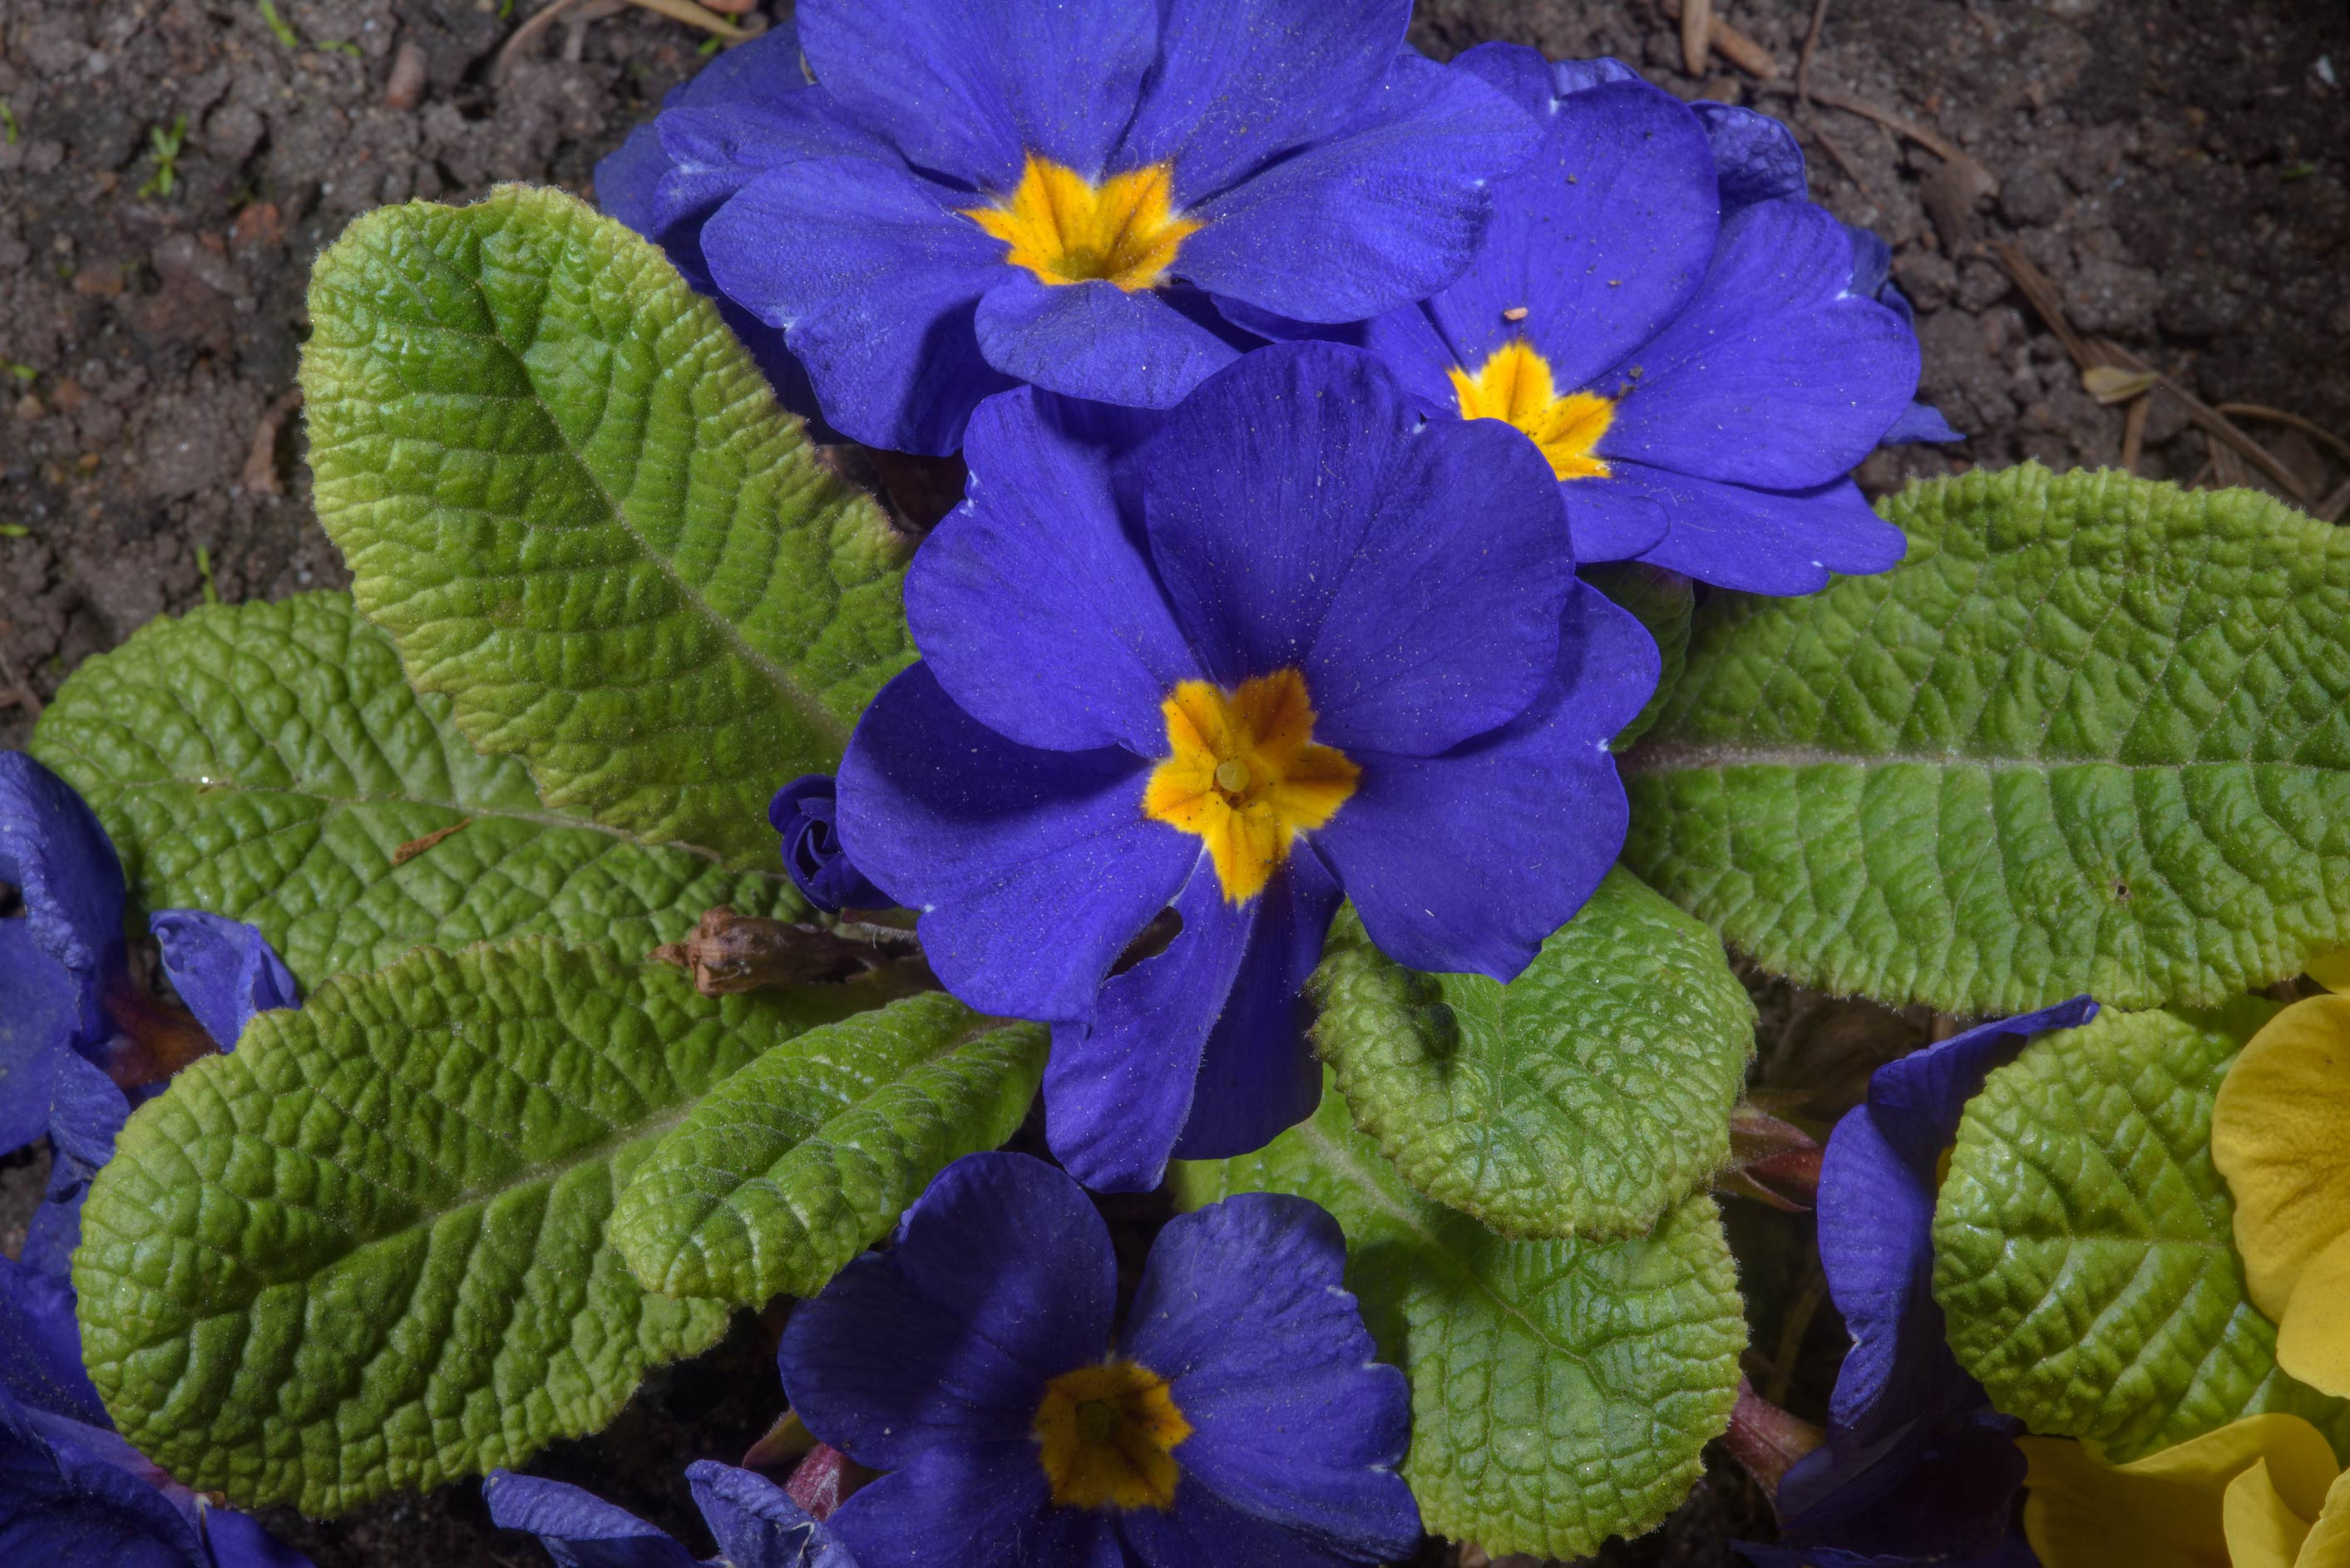 Blue primrose flowers (Primula) in Botanic...Institute. St.Petersburg, Russia